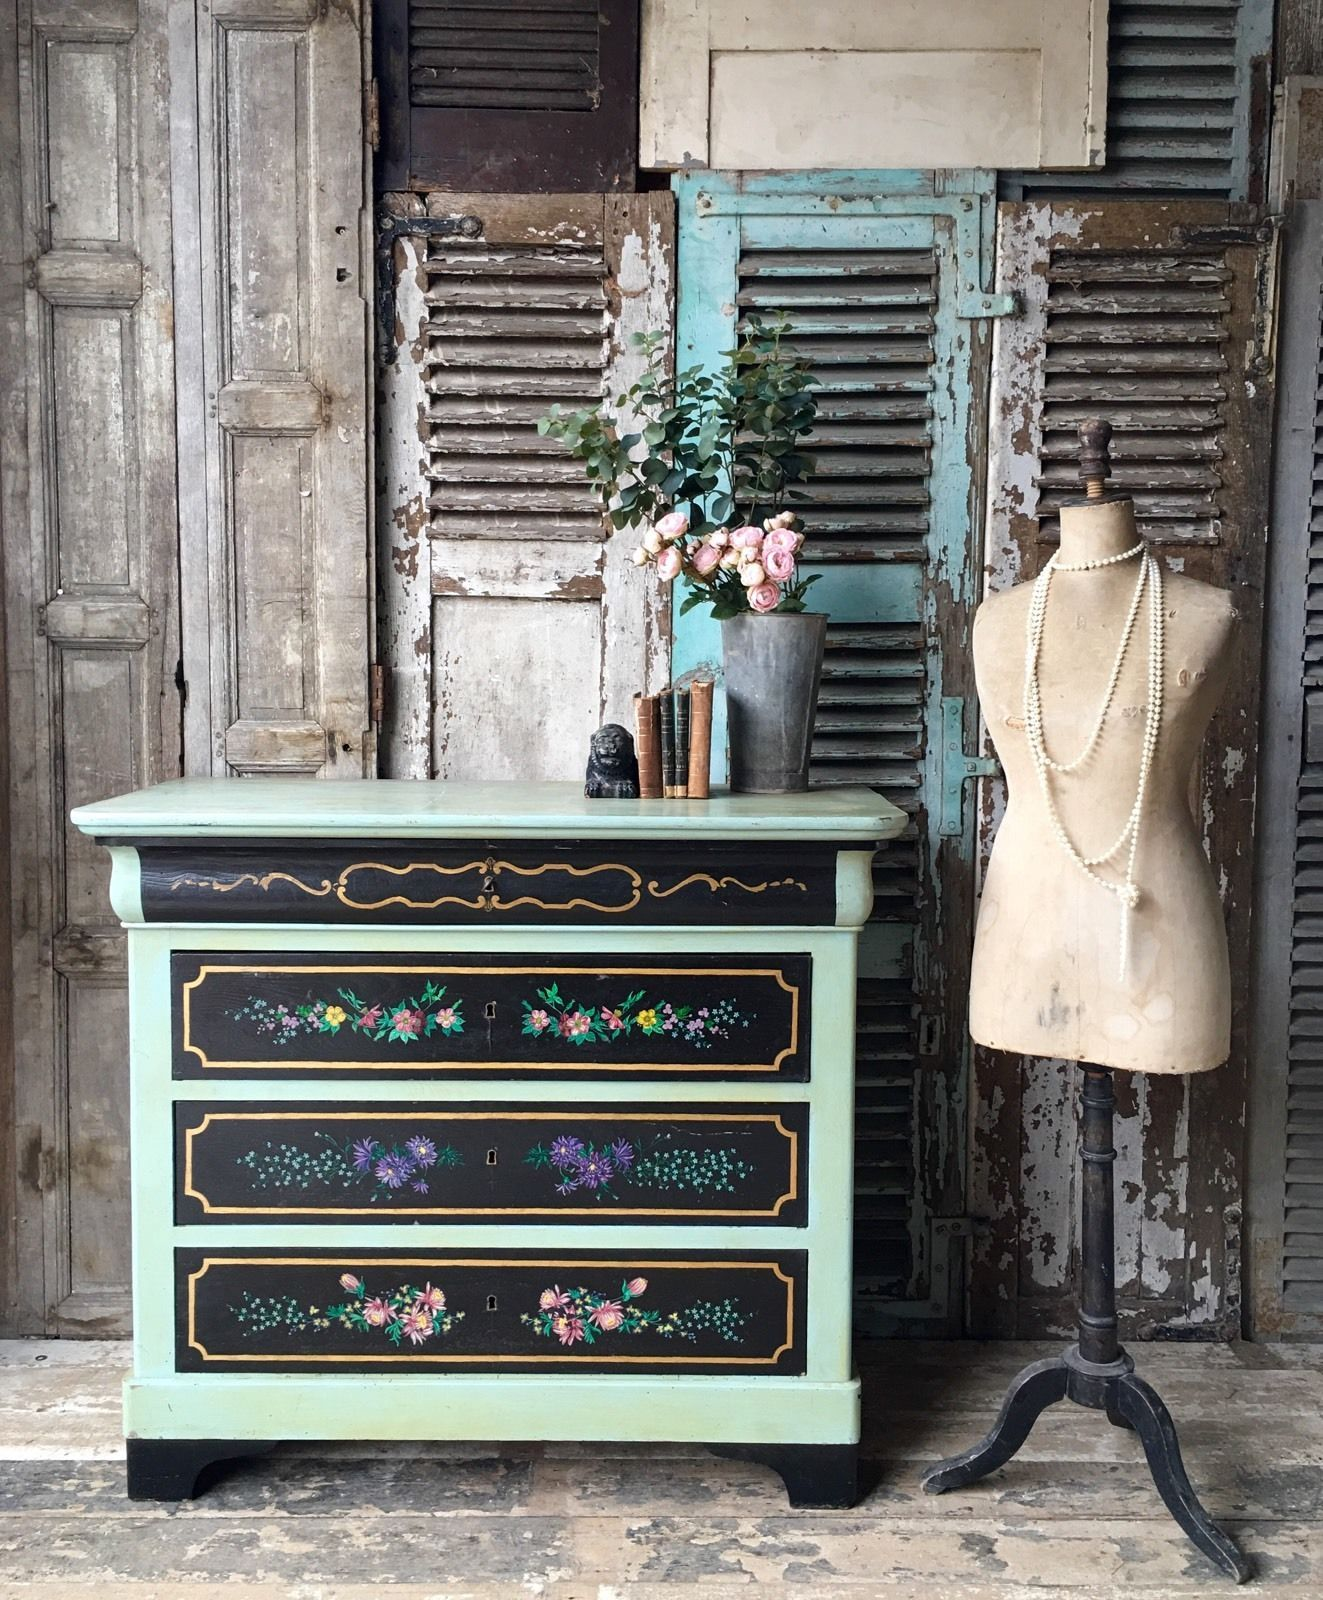 Stylish french vintage furniture to add practical charm to a bedroom